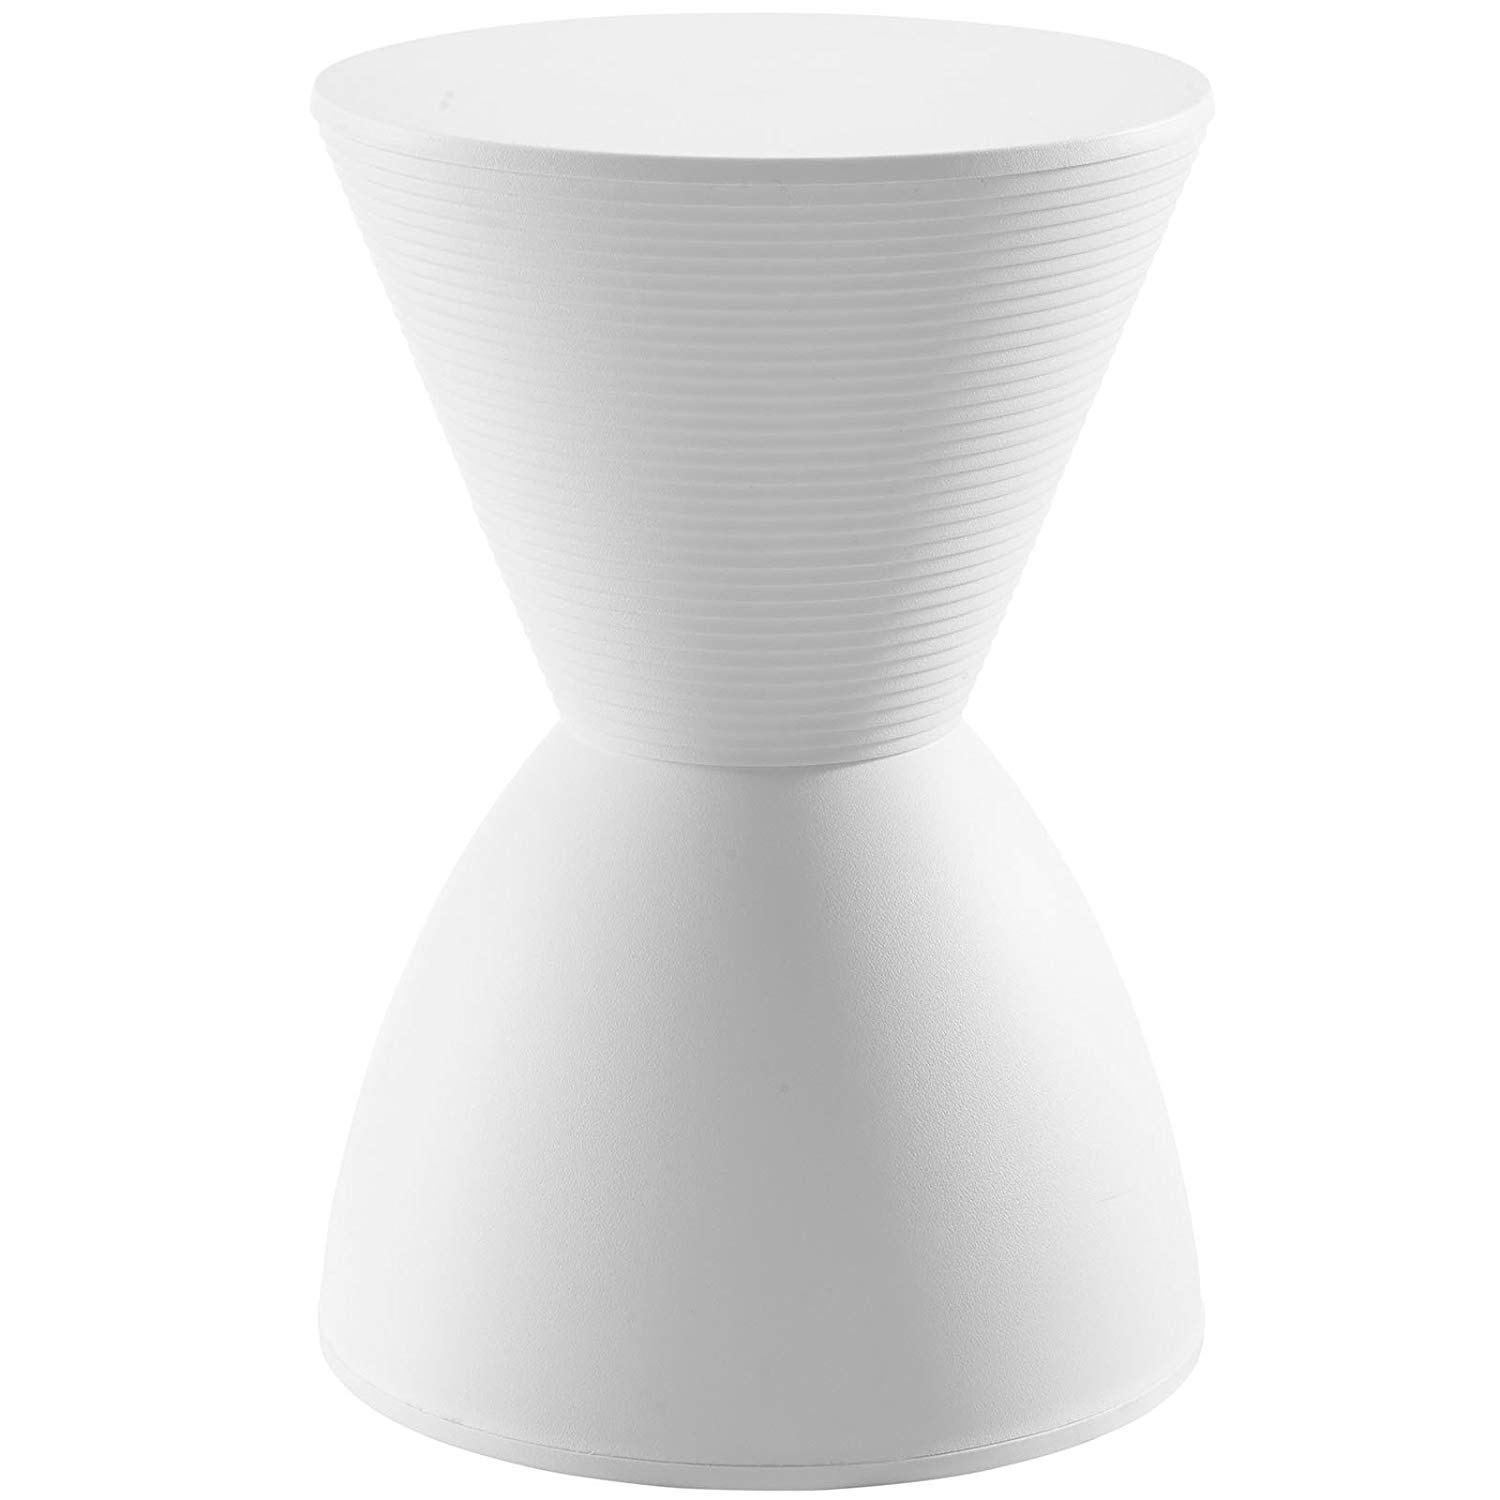 modway haste contemporary modern hourglass accent stool qbvqjl white ceramic table kitchen dining low outdoor seaside lamps small cocktail tables for spaces tall bar metal cabinet